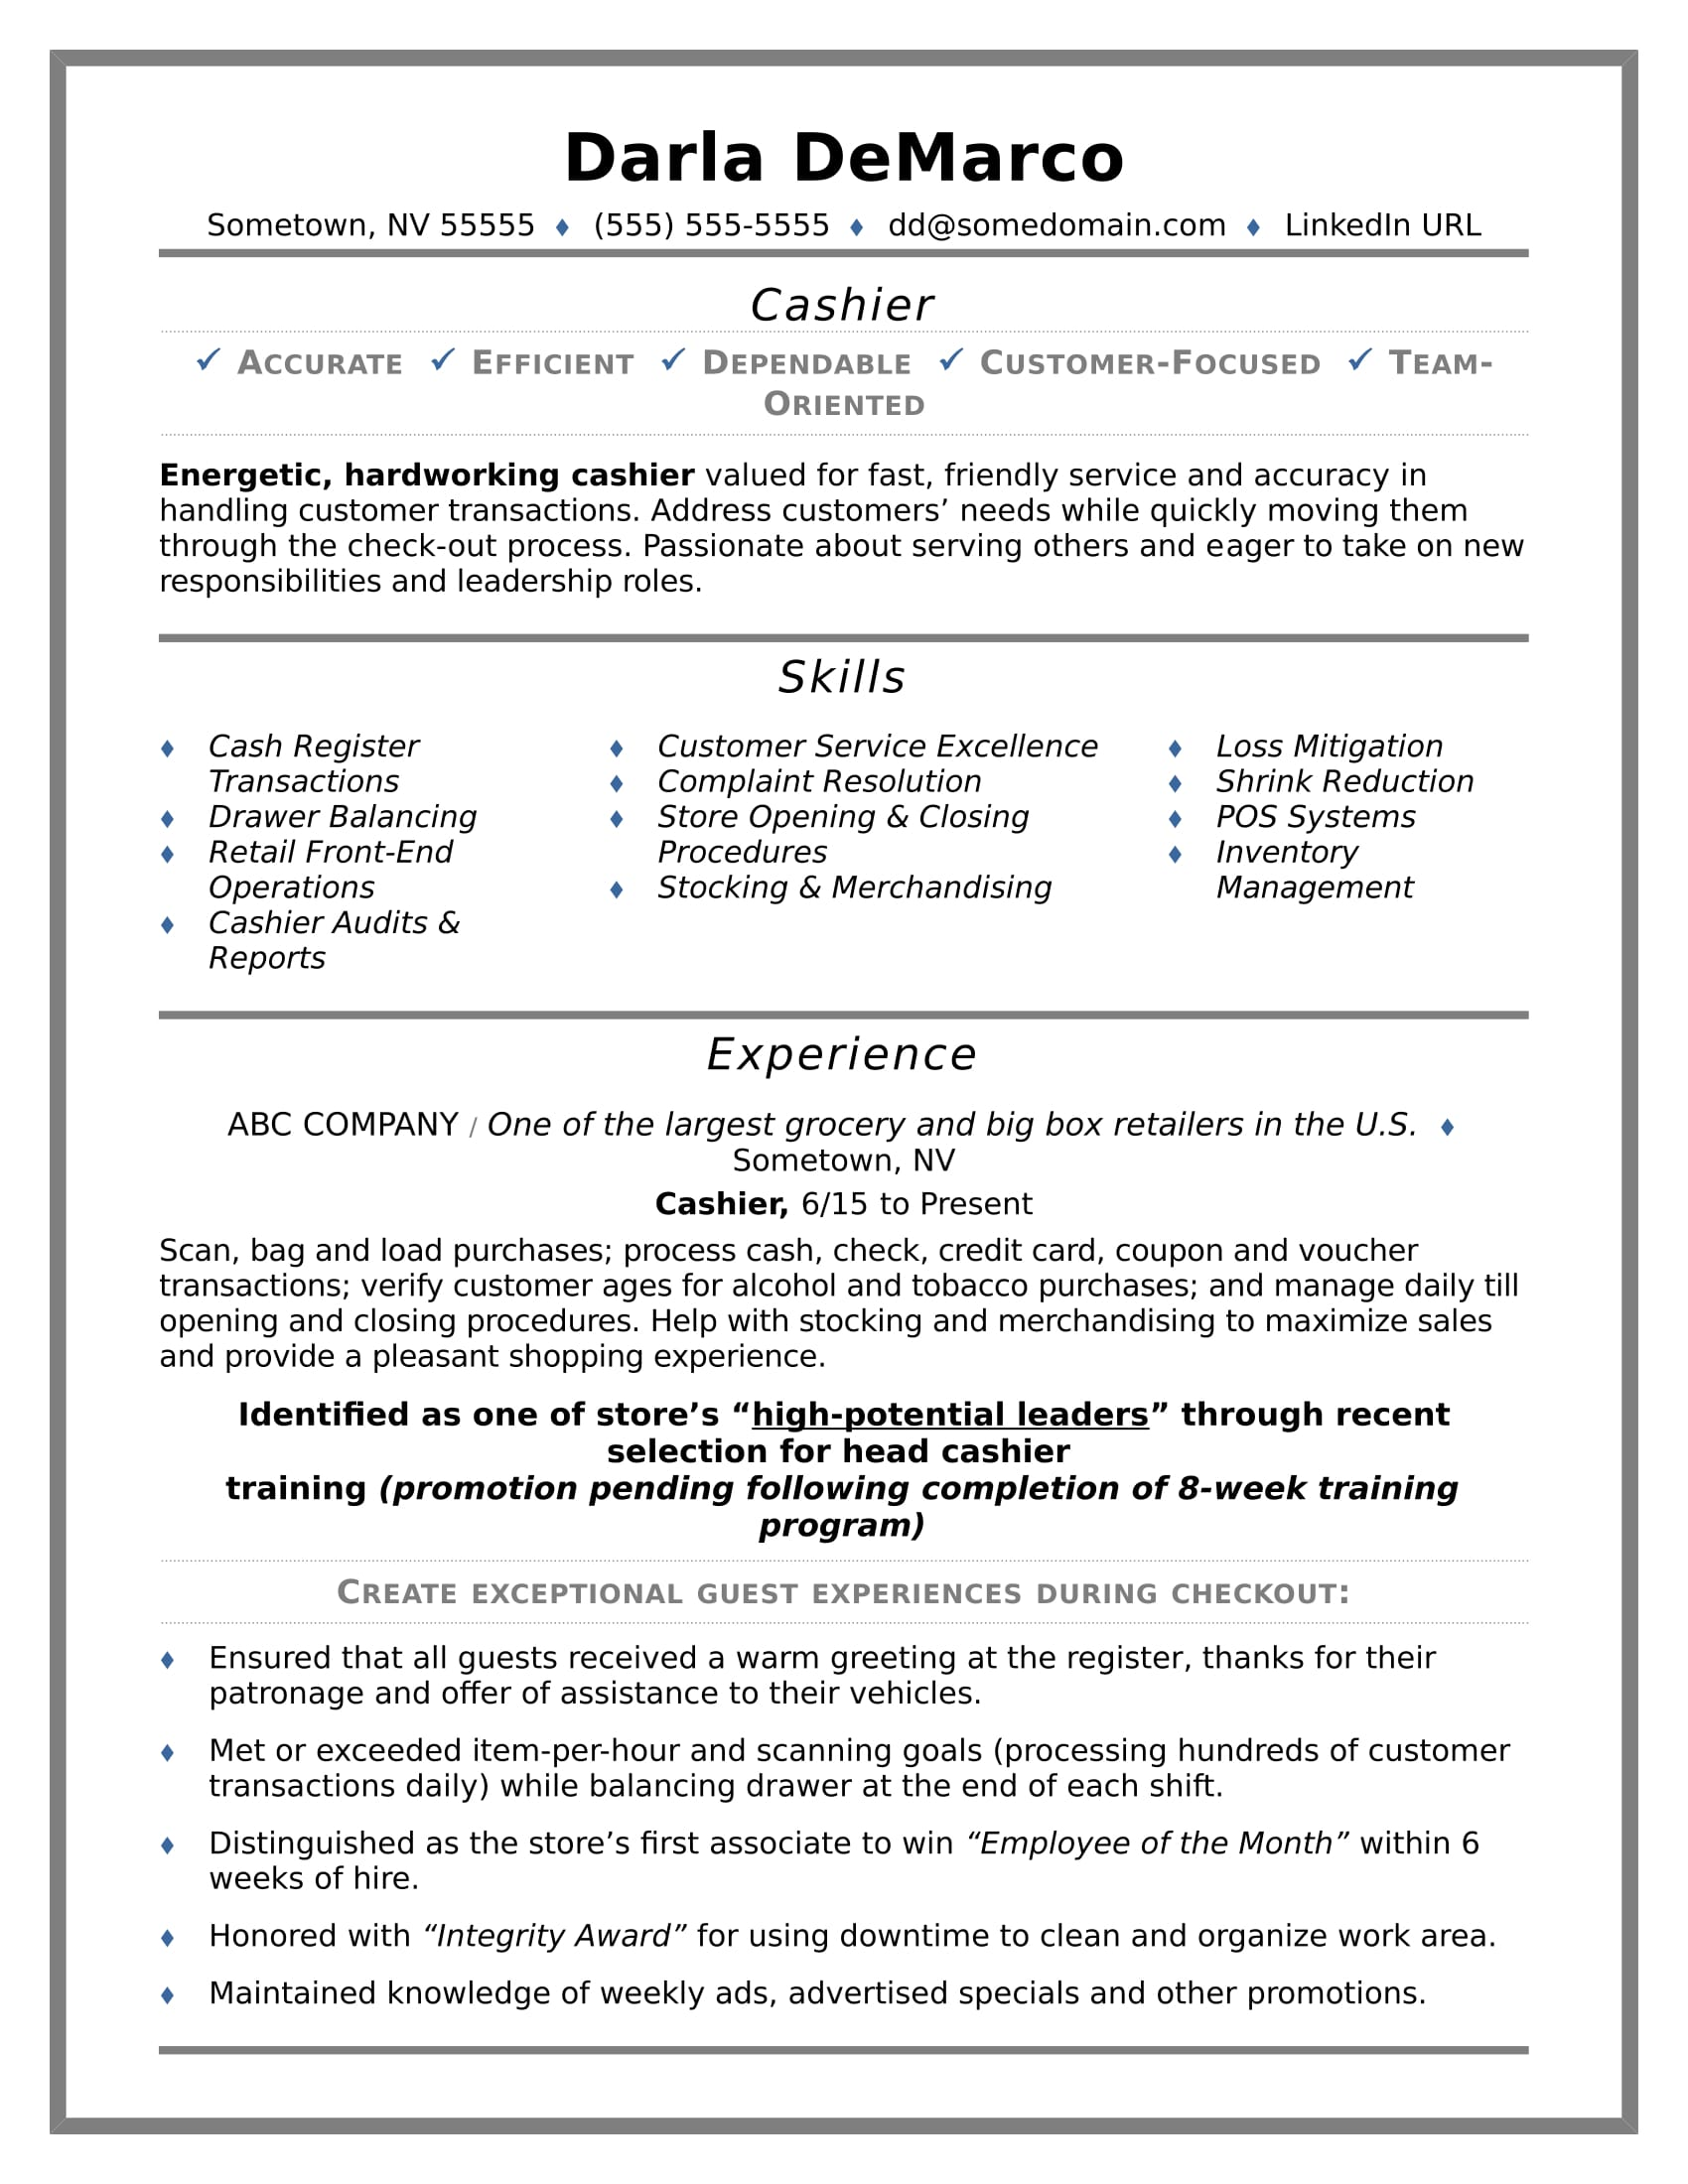 cashier resume sample monster duties for risk management mssu optimal examples of titles Resume Duties For Cashier Resume